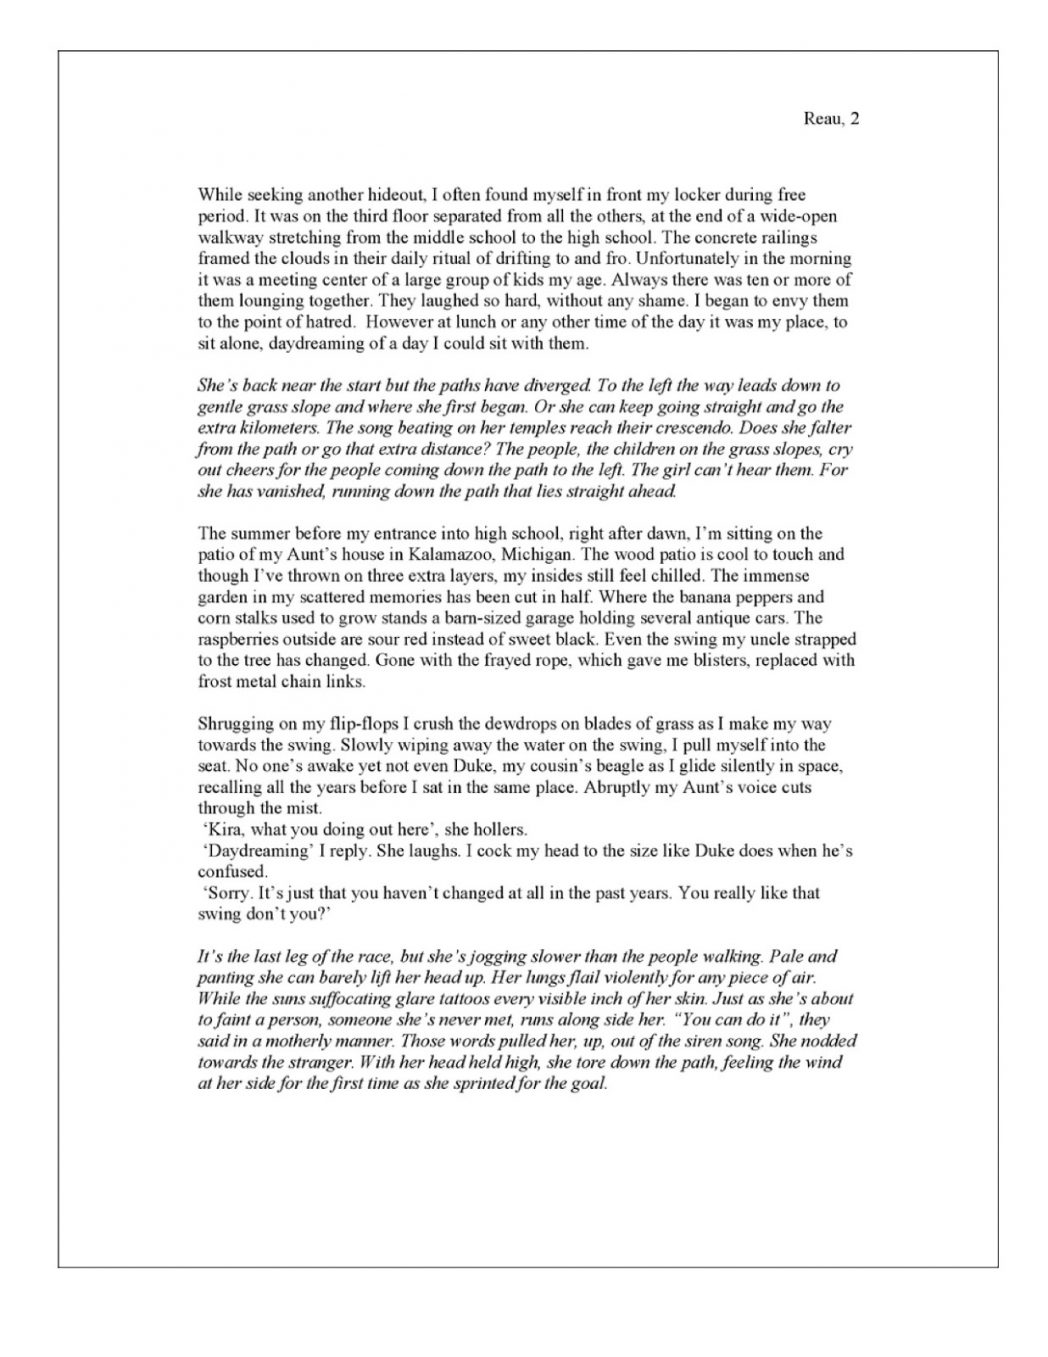 018 Narration Essay Define Narrative Definition Of The Life A Misant How To Write My Help Me 1048x1357 Fascinating Literacy Nonfiction Full